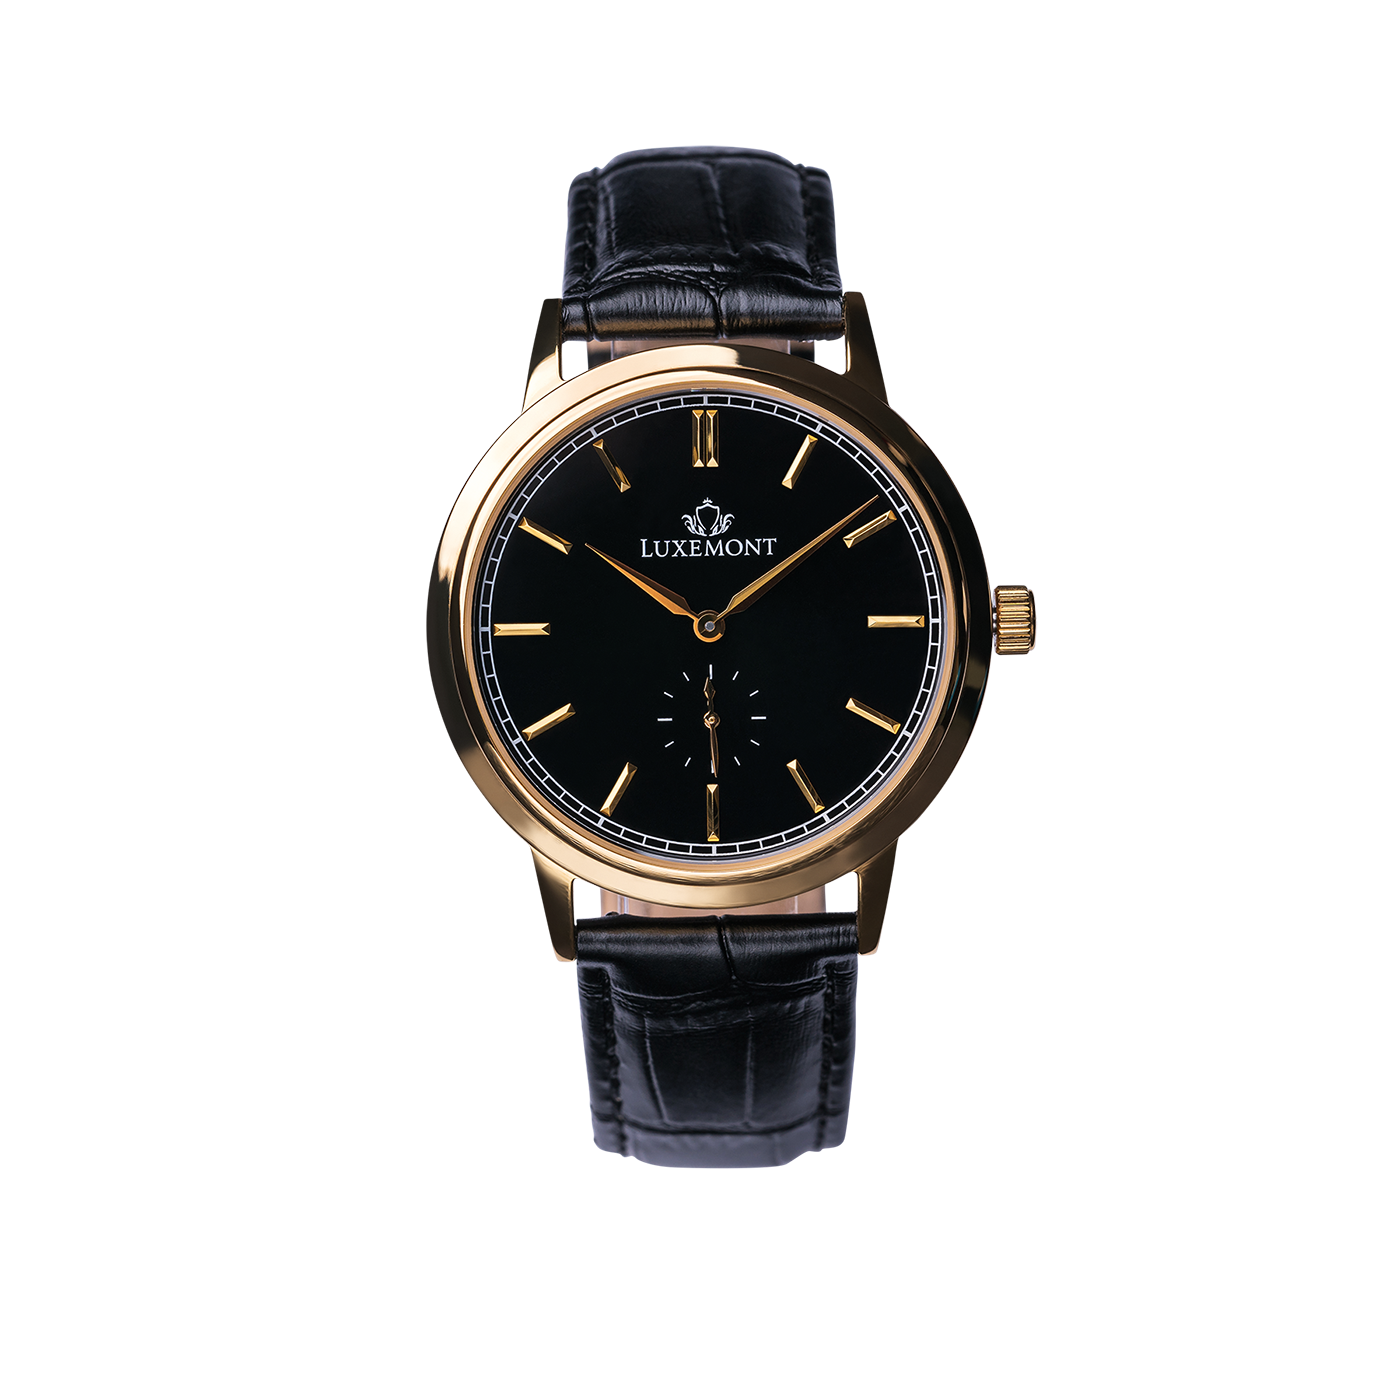 luxemont maestro yellow gold black dial front view